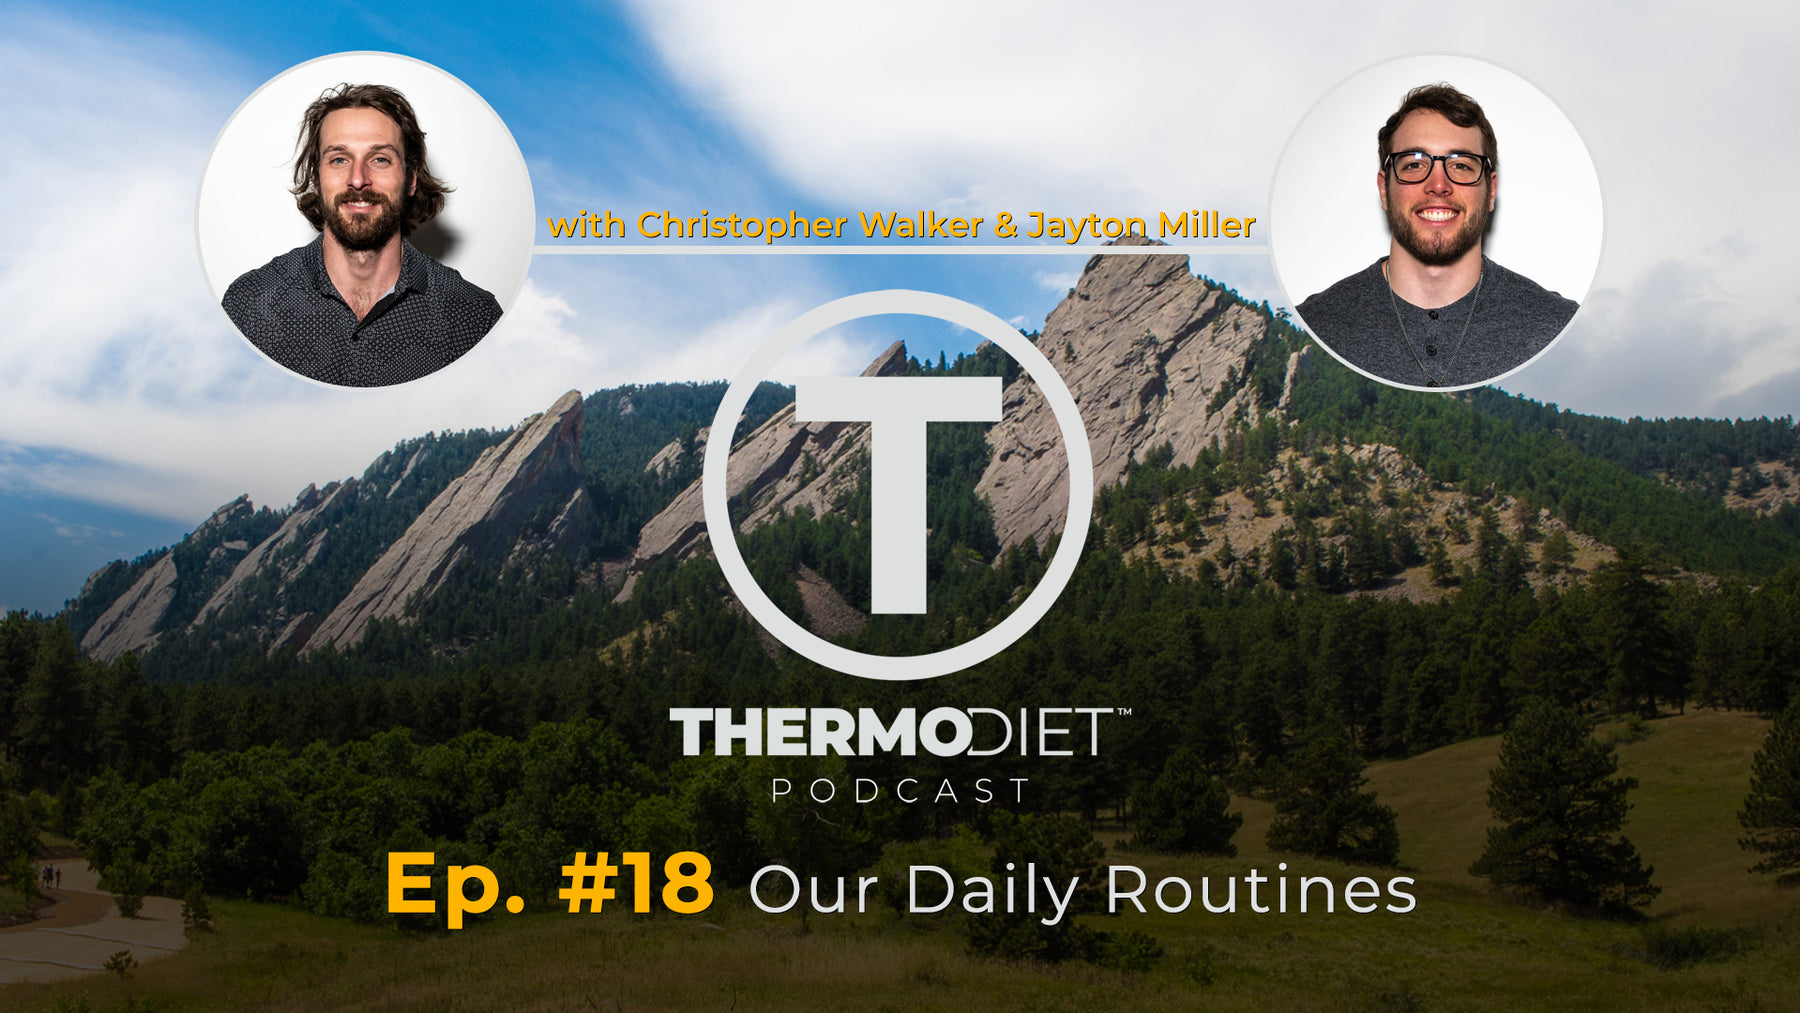 Thermo Diet Podcast Episode 18 - Routines